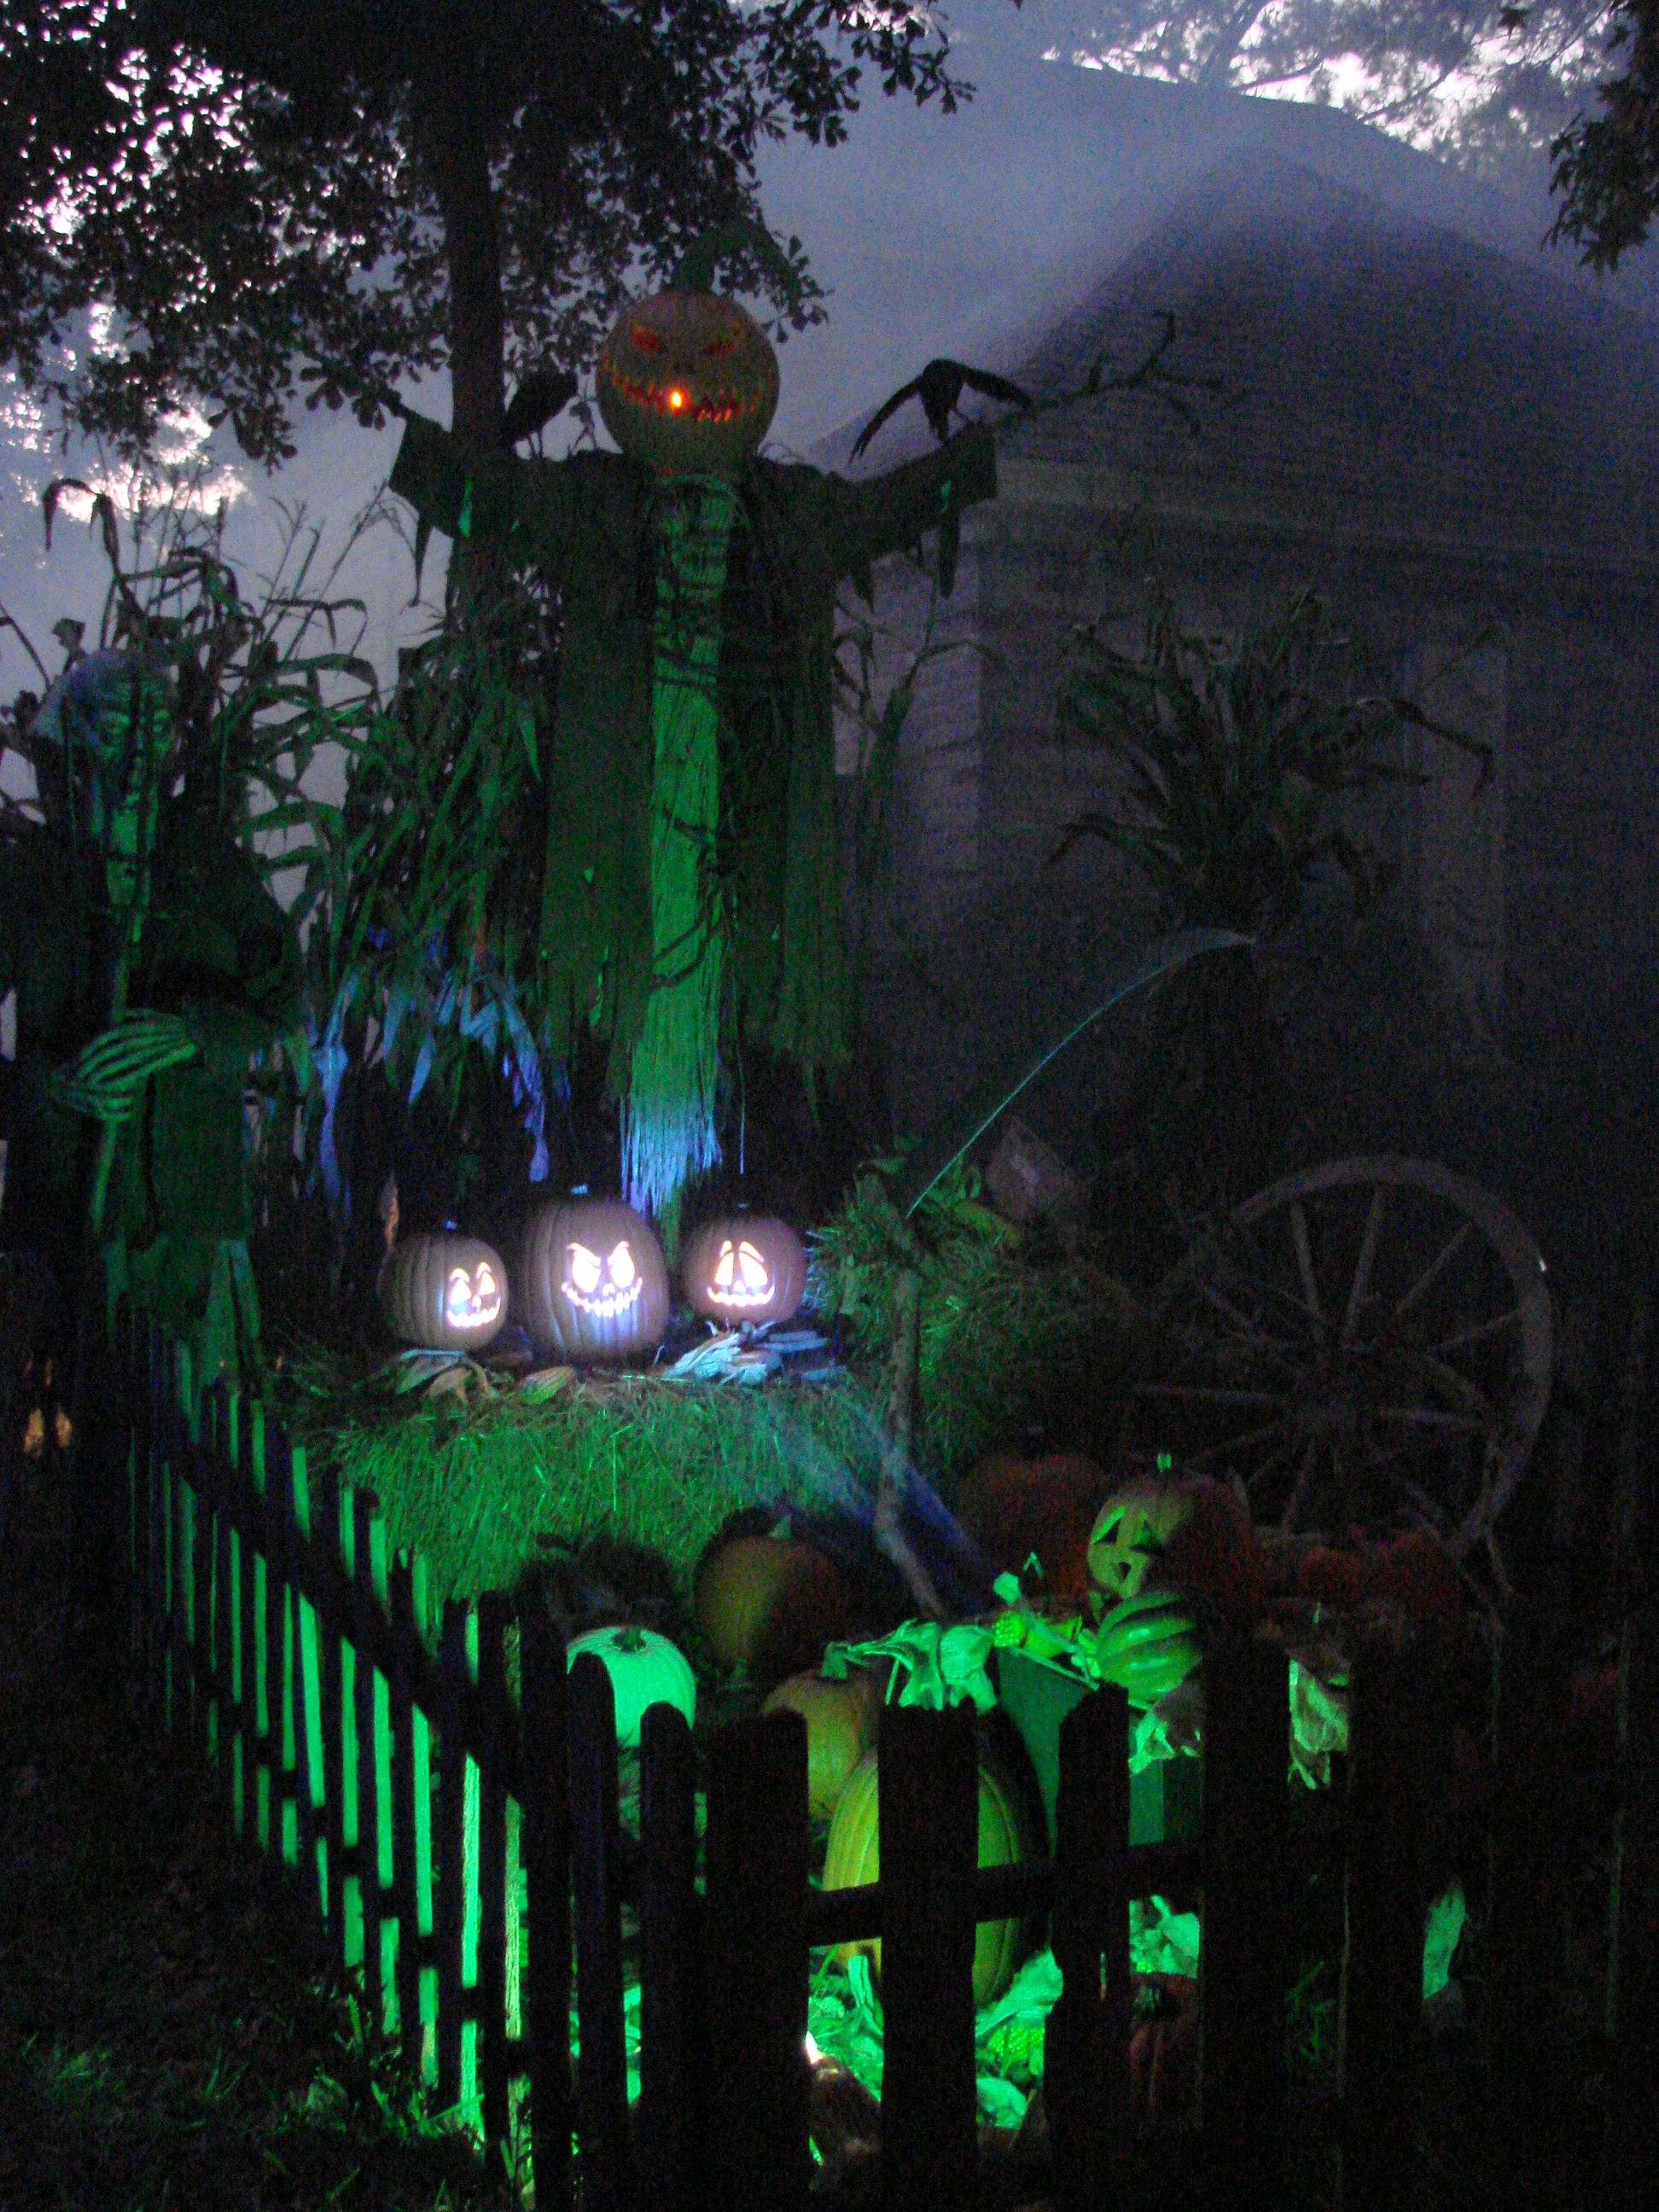 Pumpkin King with singing pumpkins Christmas Lights Outside - Halloween Yard Decorations Ideas